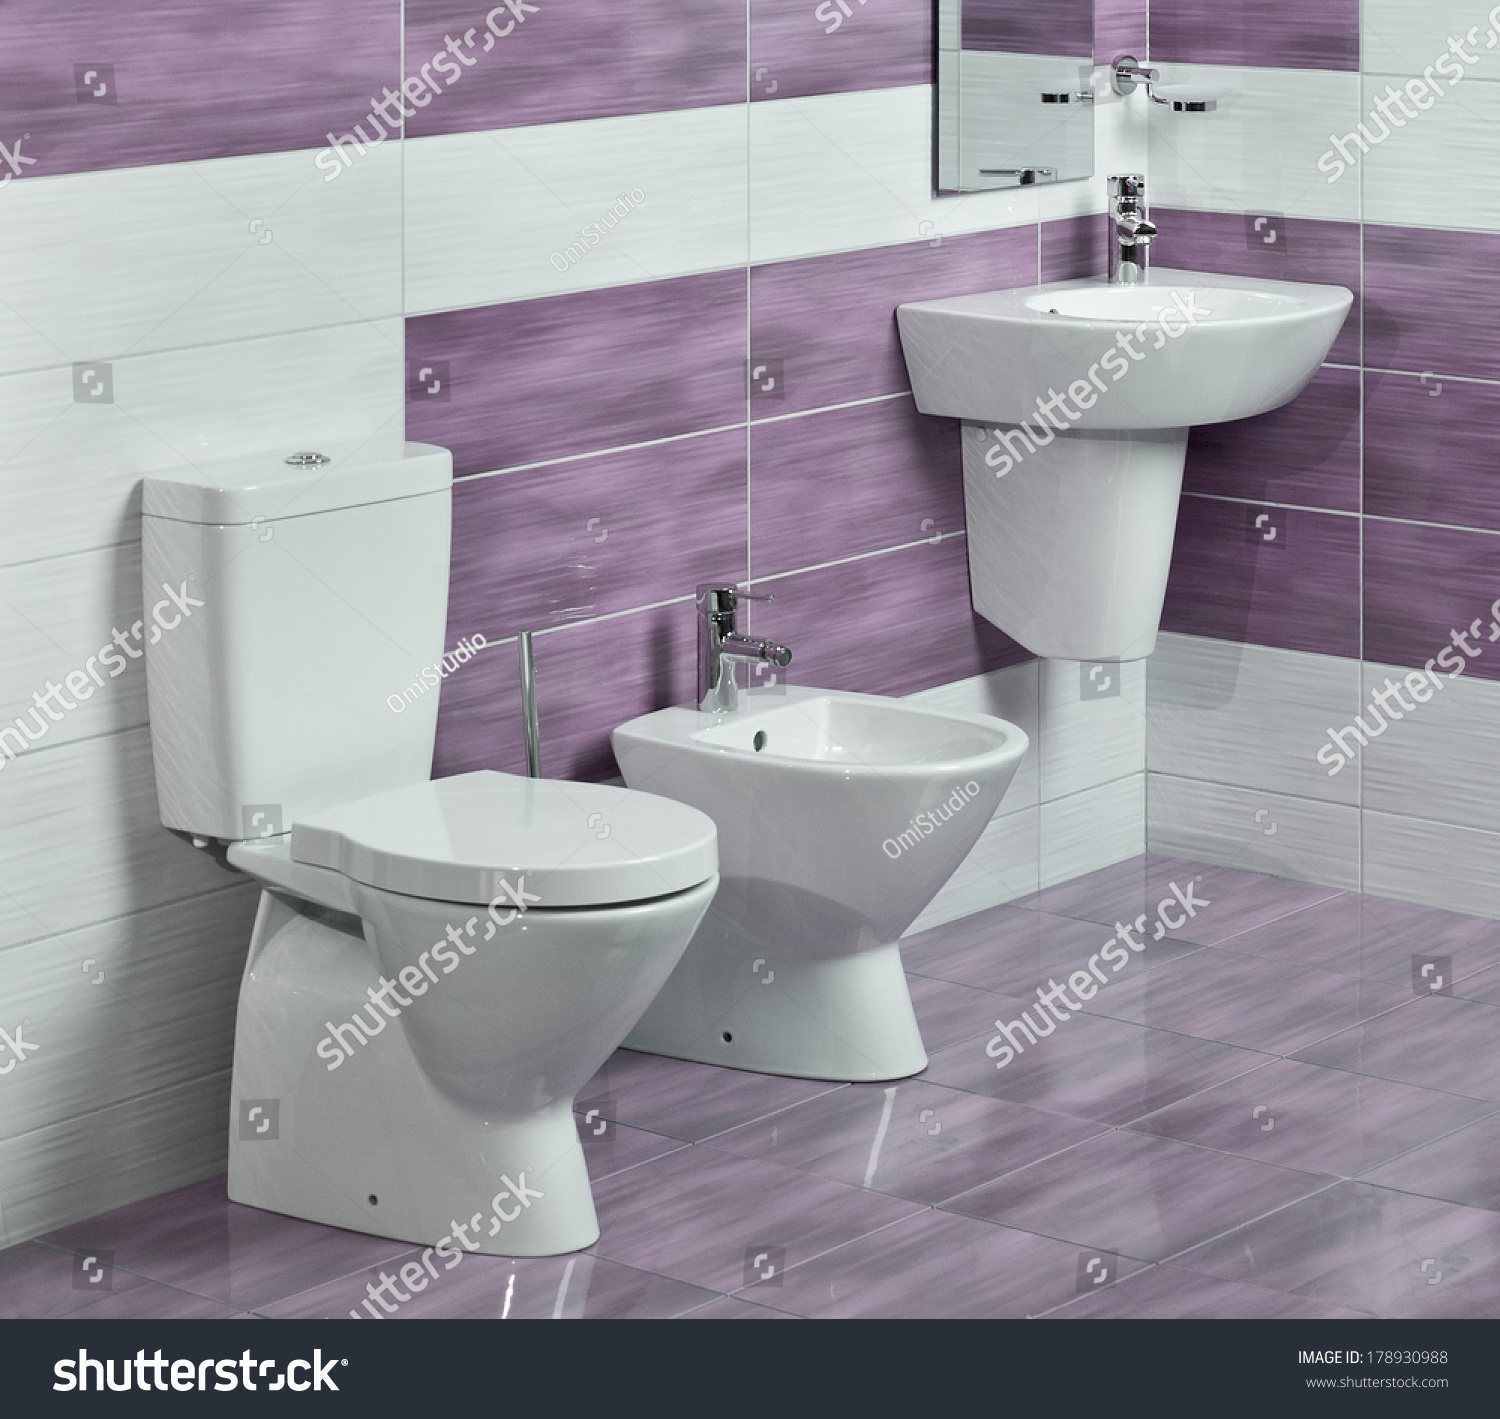 Detail Of Modern Bathroom With Sink, Toilet And Bidet, With Purple And White Tiles And Miror